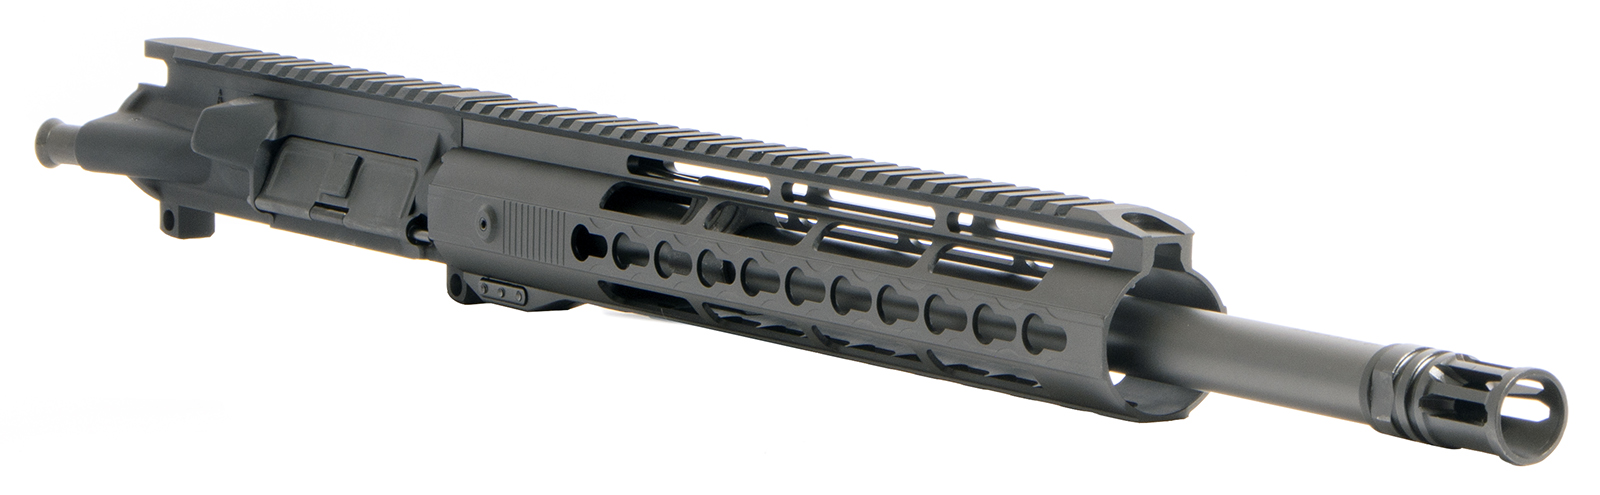 AR-15 Complete Upper Assembly - 16